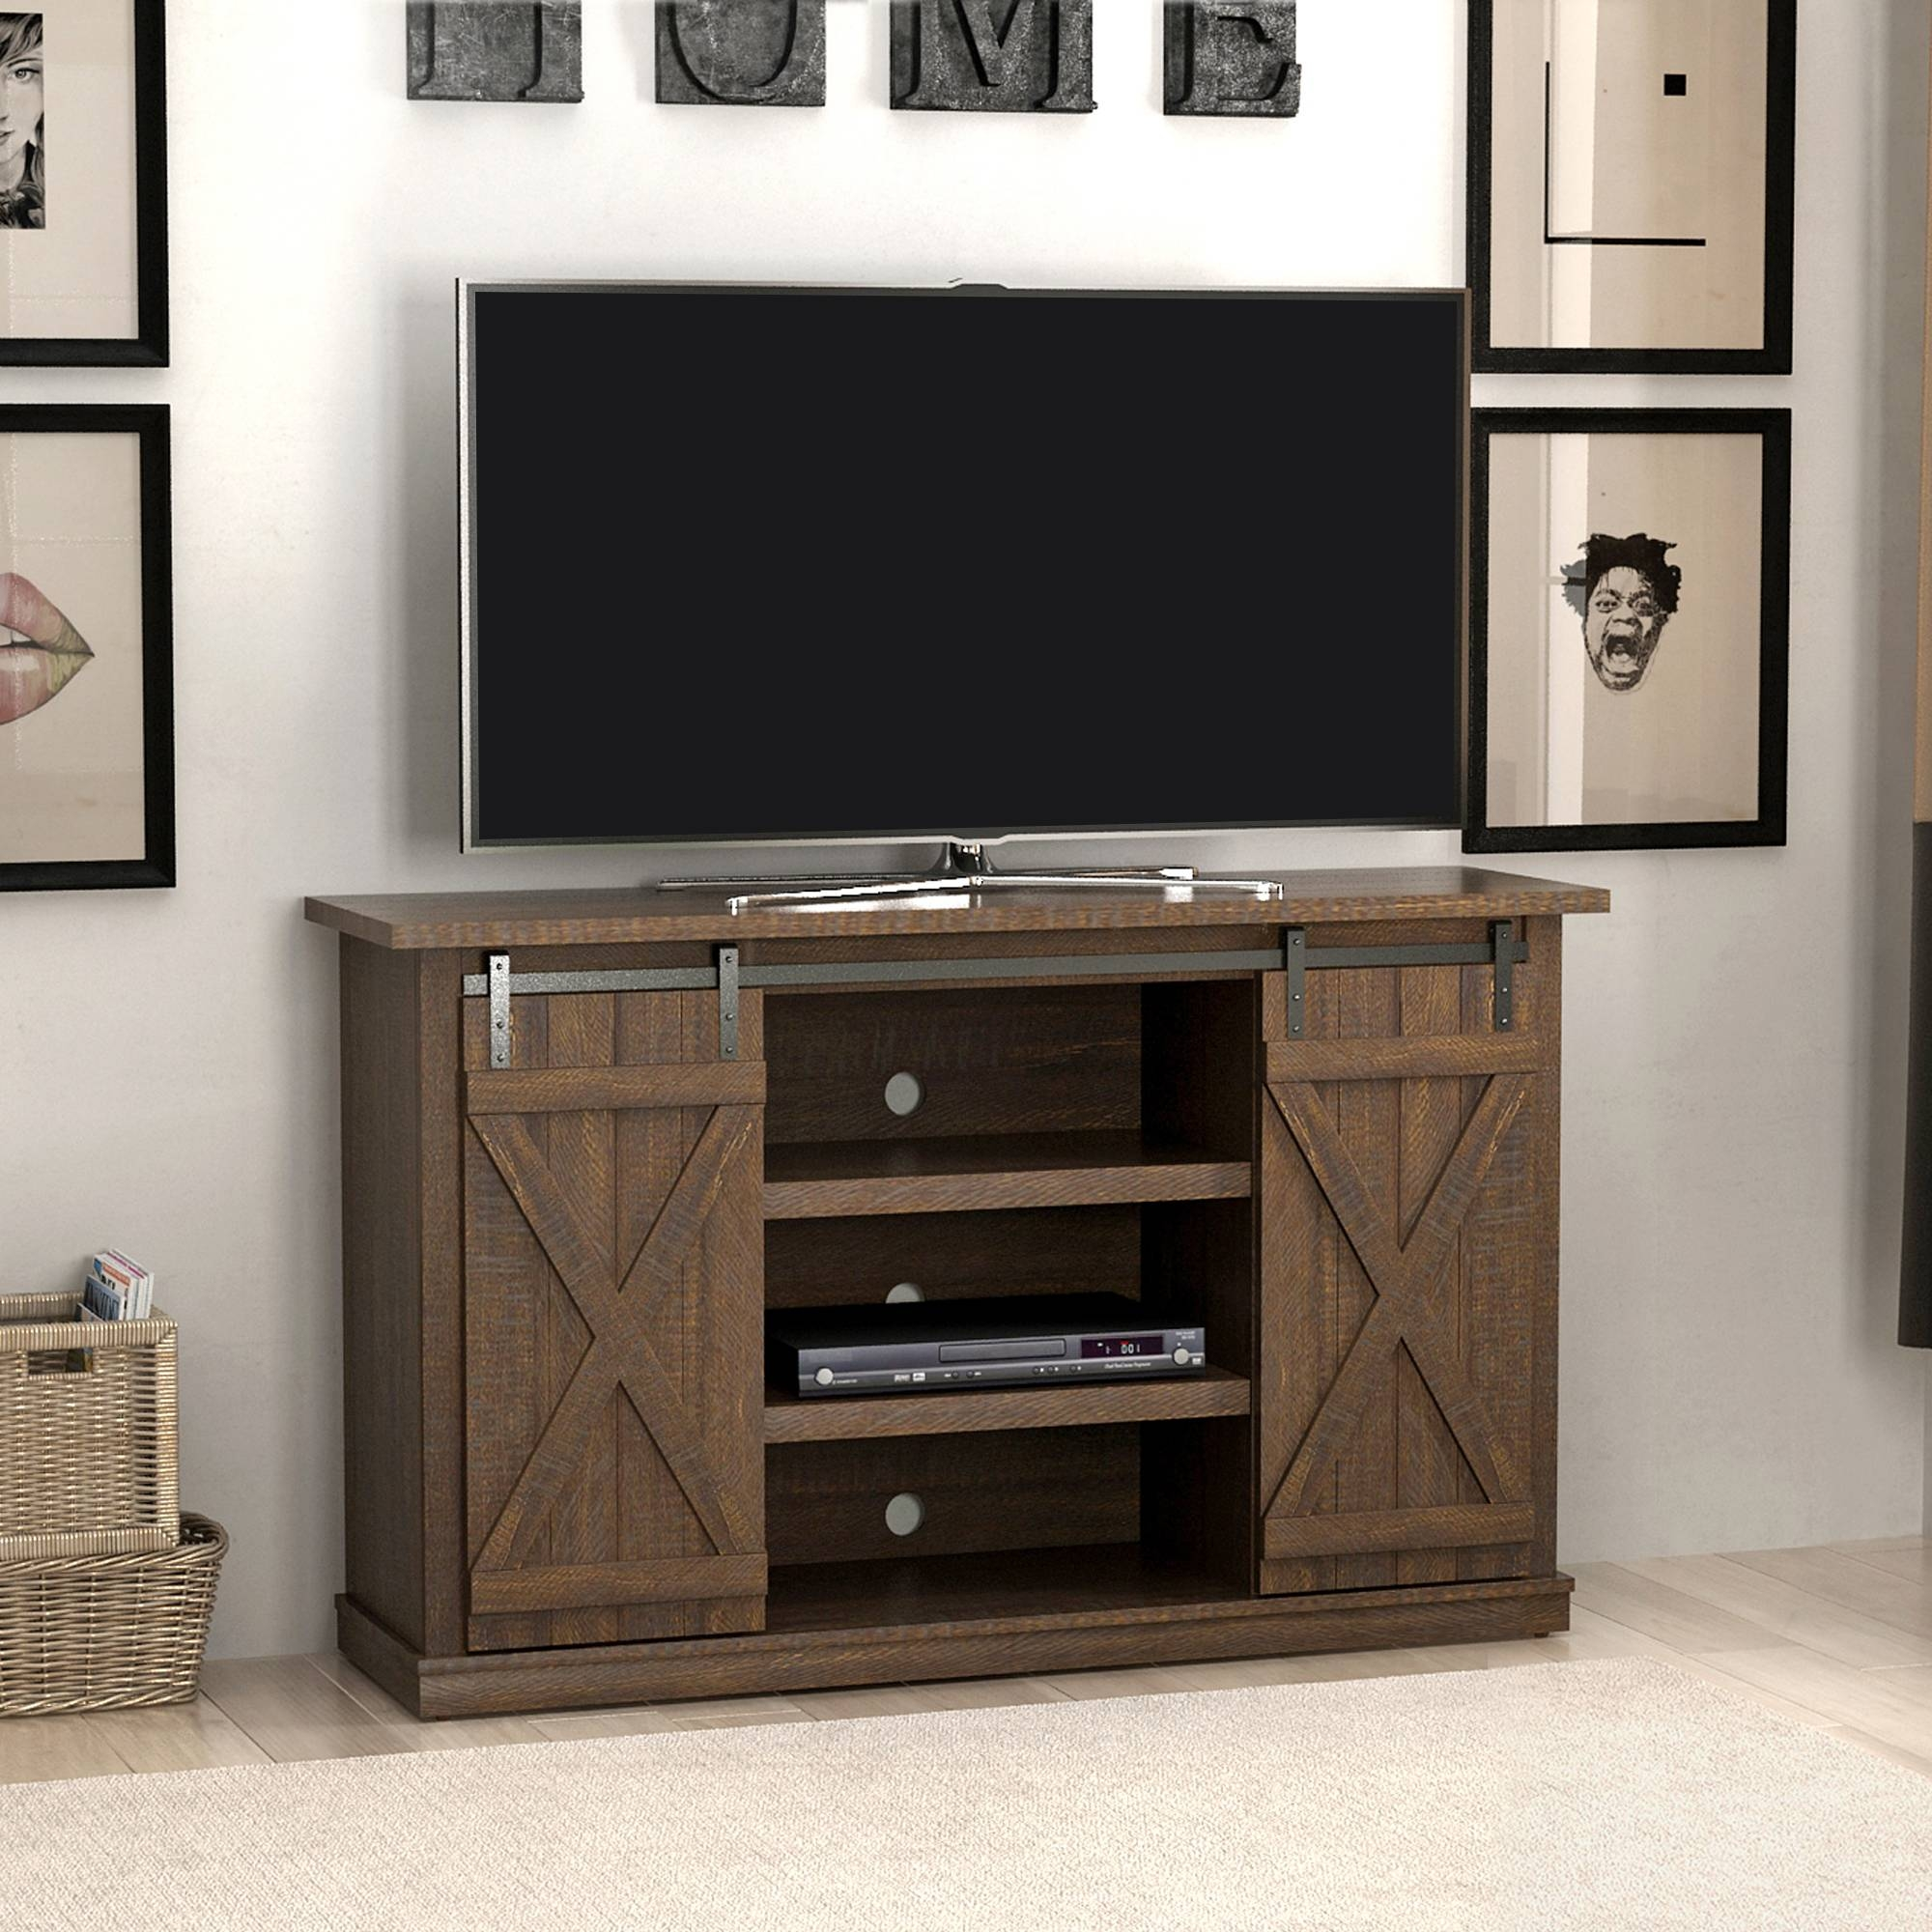 Tv Stands - Walmart throughout Skinny Tv Stands (Image 15 of 15)